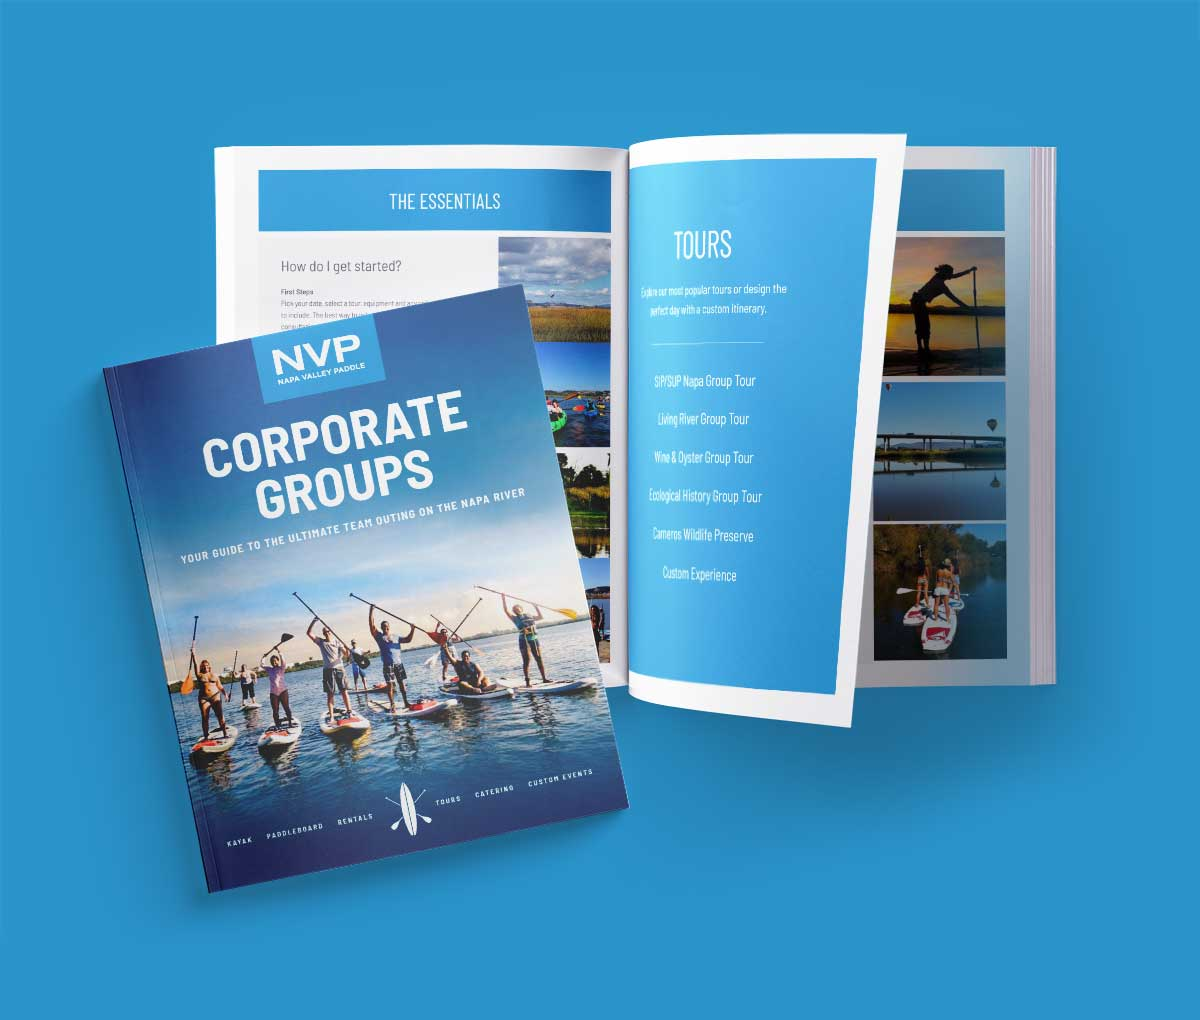 Corporate Outing Planning Guide